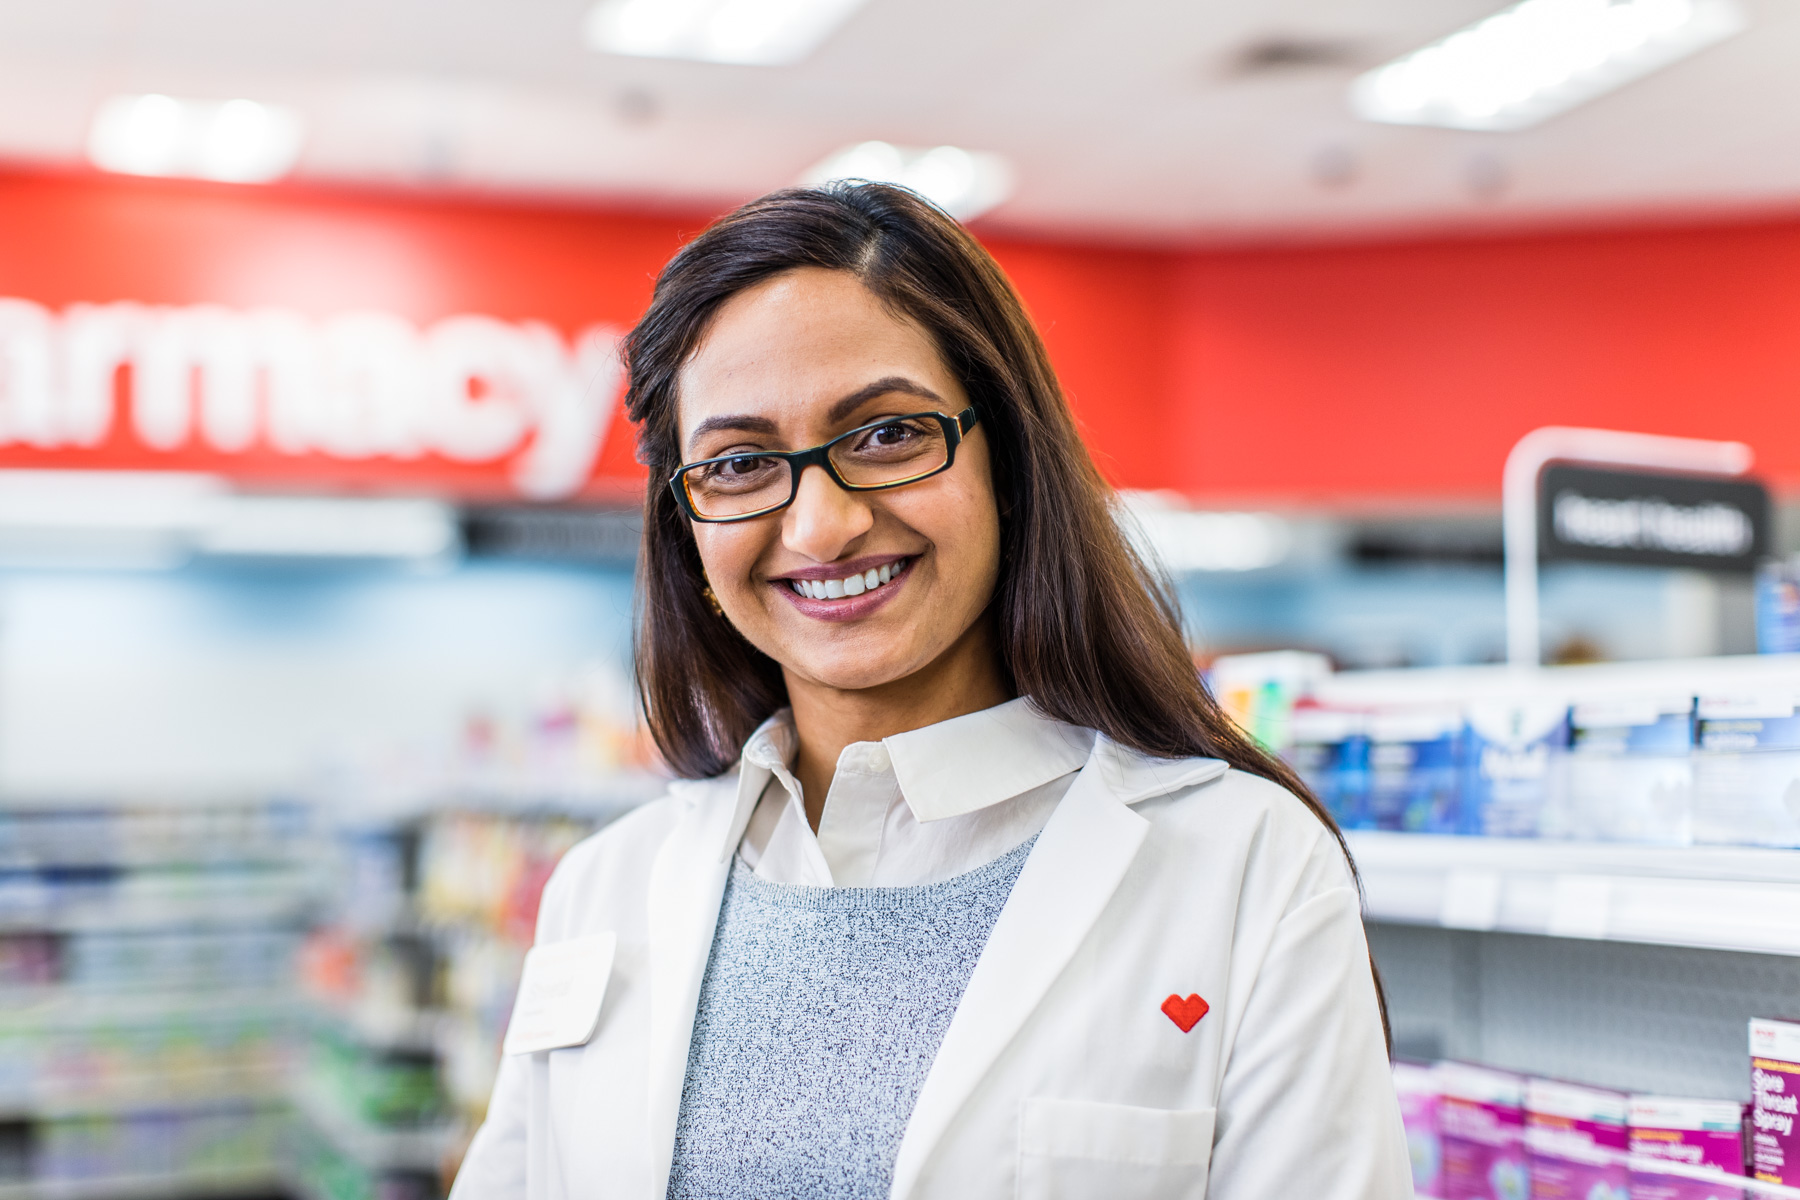 0927_20160426_CVS_02_PHARMACIST_PORTRAIT_B_0254_